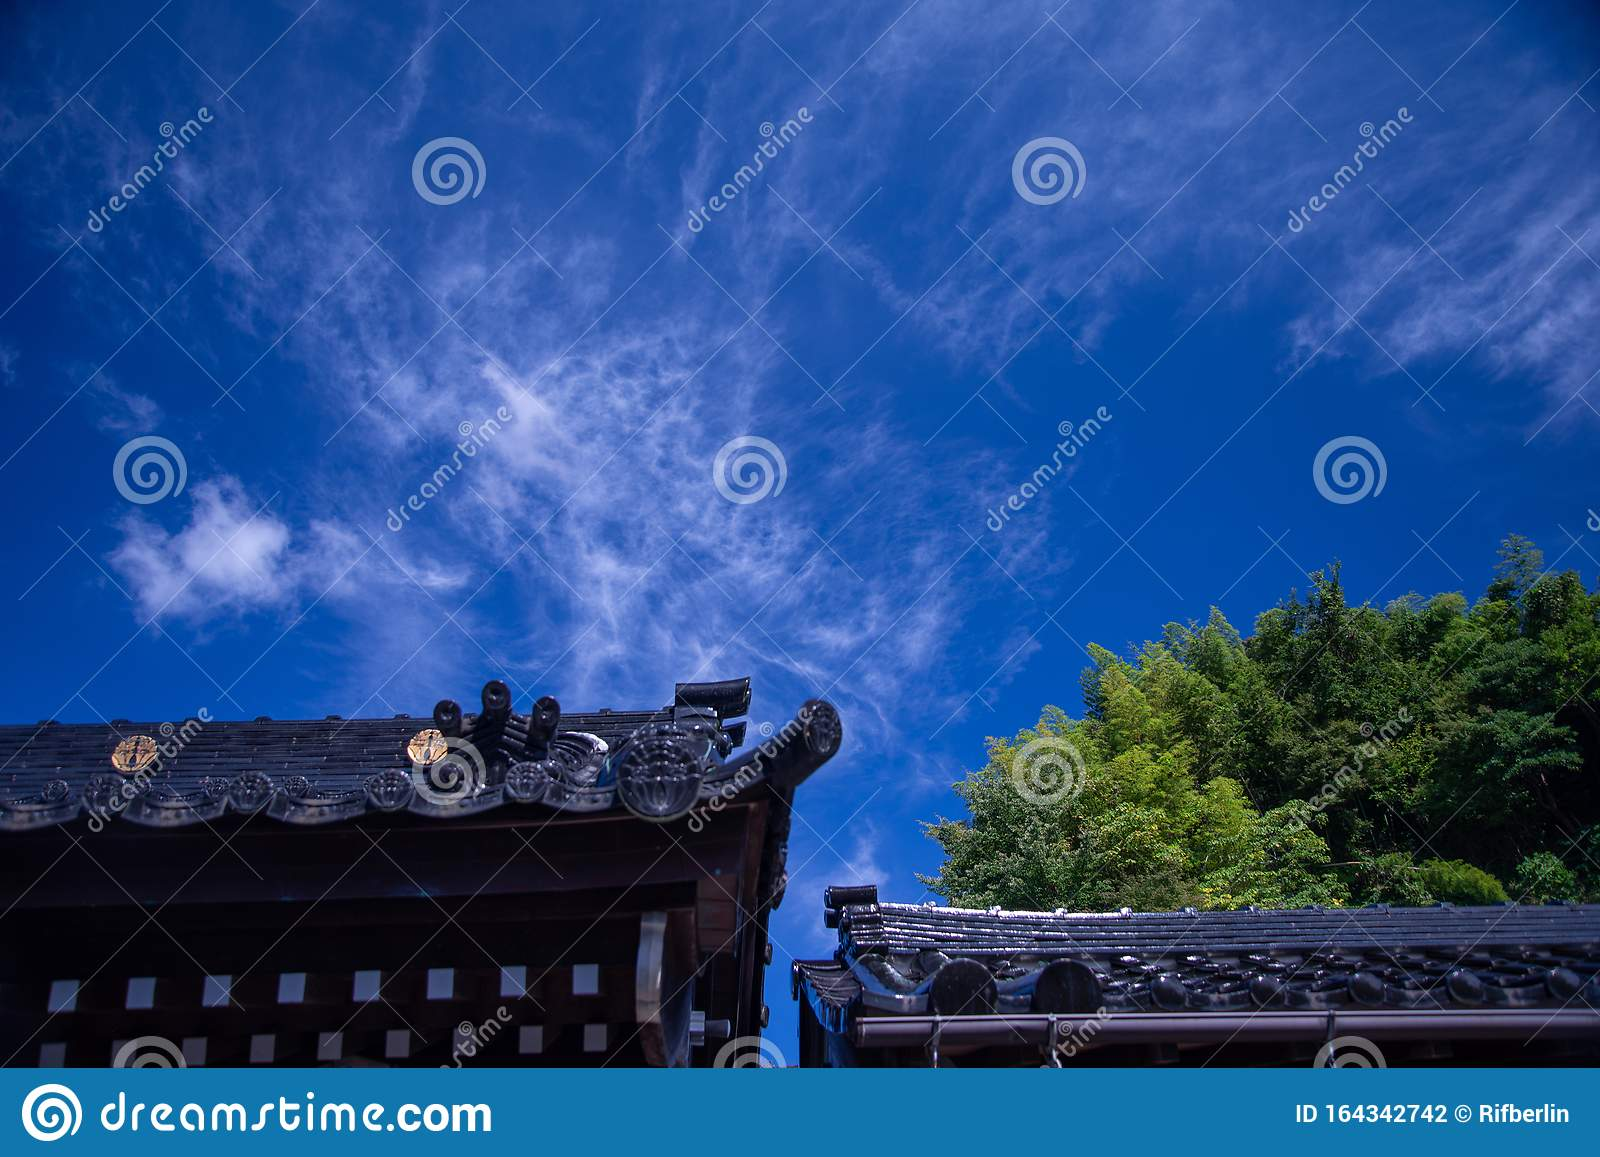 Japanese Temple Roof Architecture Agains A Blue Sky Stock Photo